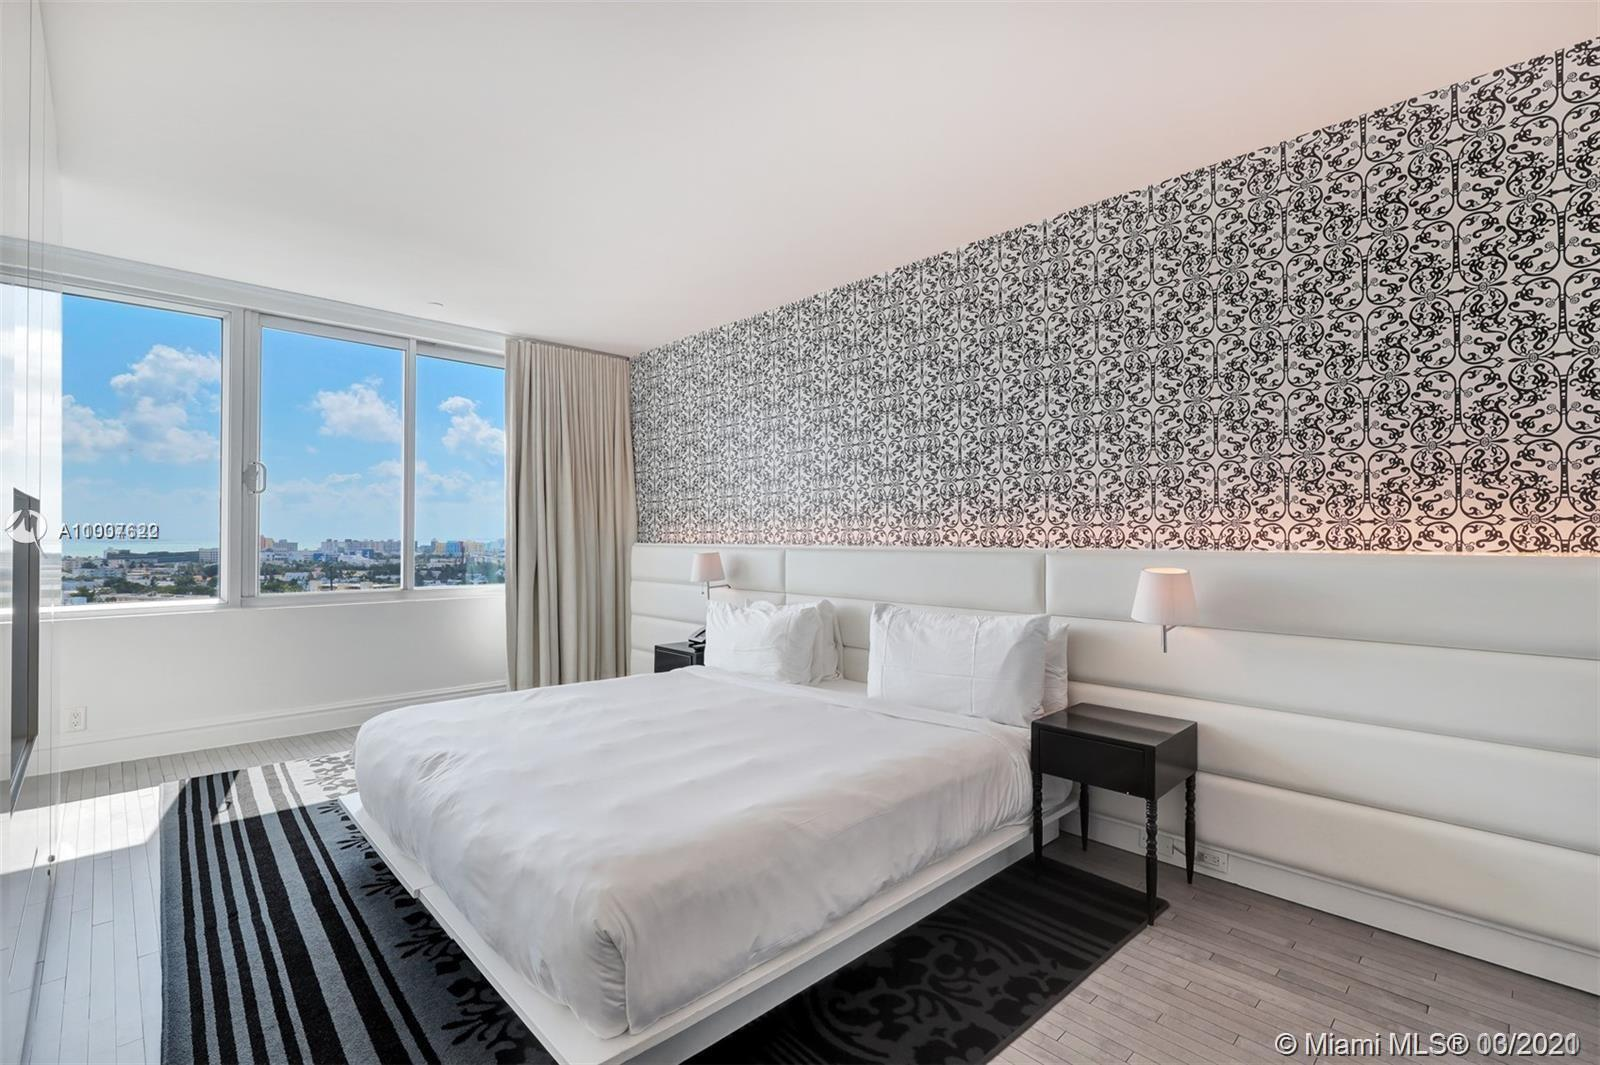 GREAT 1 BEDROOM, 1 BATHROOM SUITE WITH KITCHEN AT THE FAMOUS NEWLY REOPENED 1100 WEST CONDO HOTEL AF